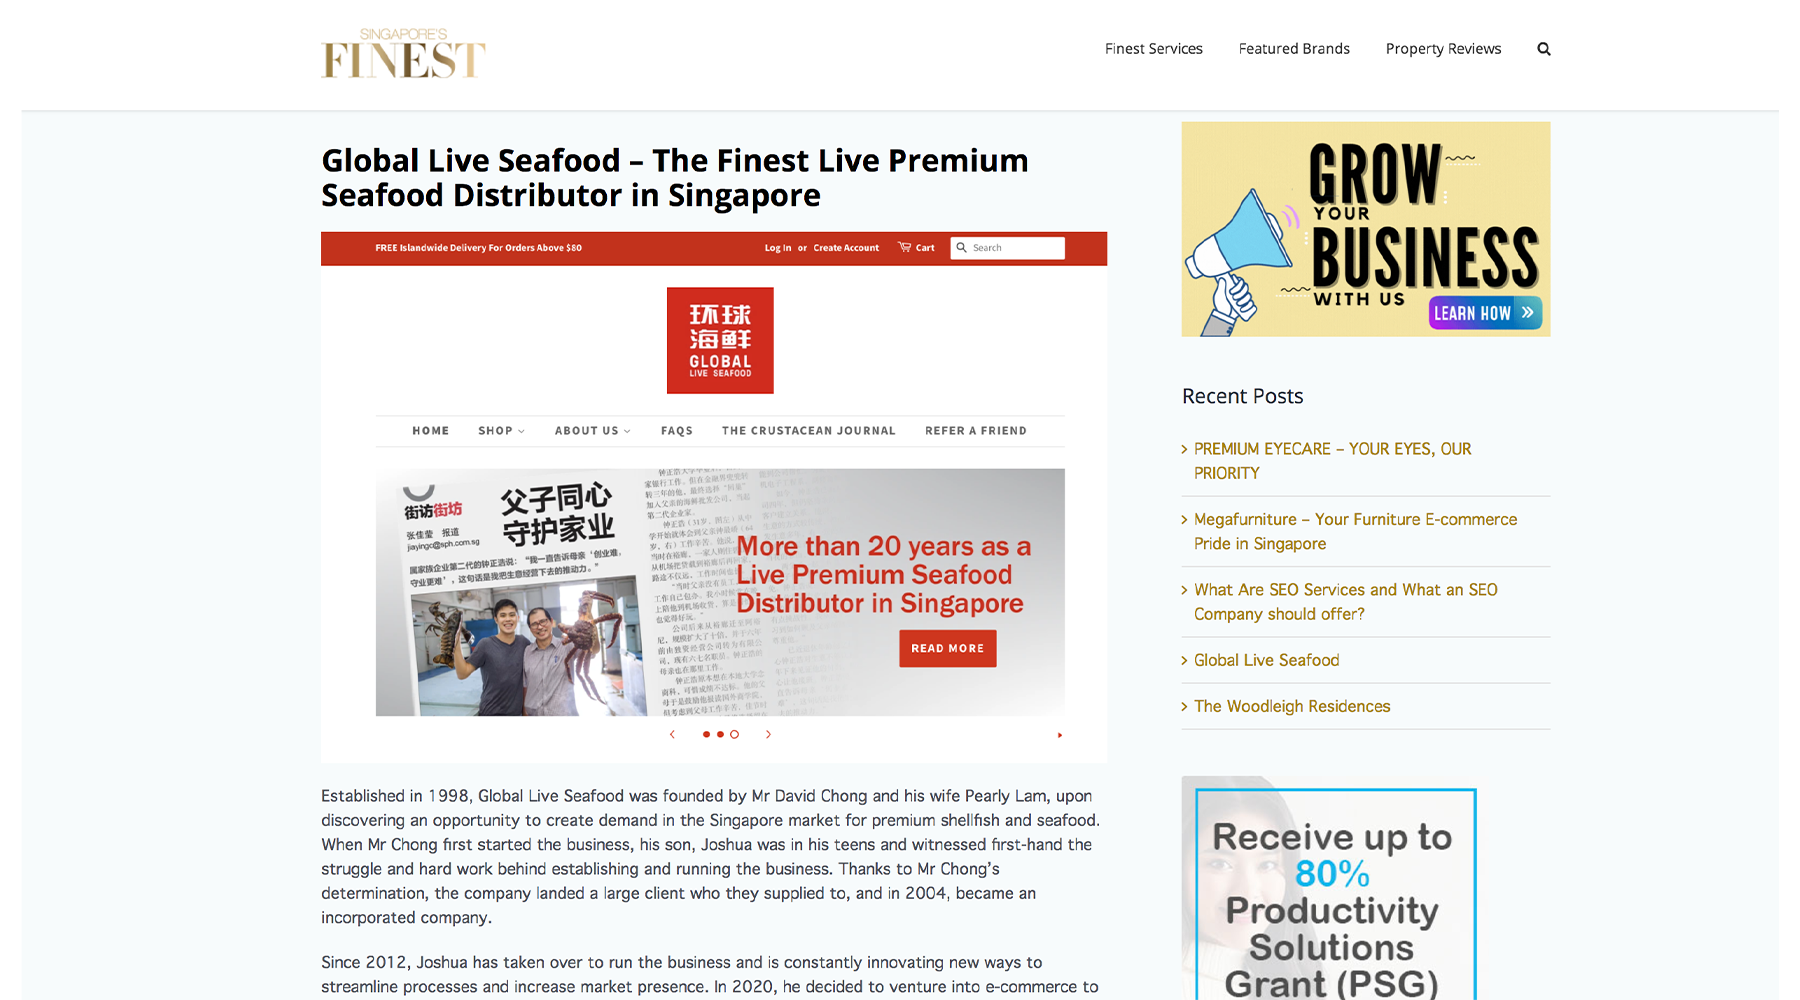 global live seafood featured in singapore finest article